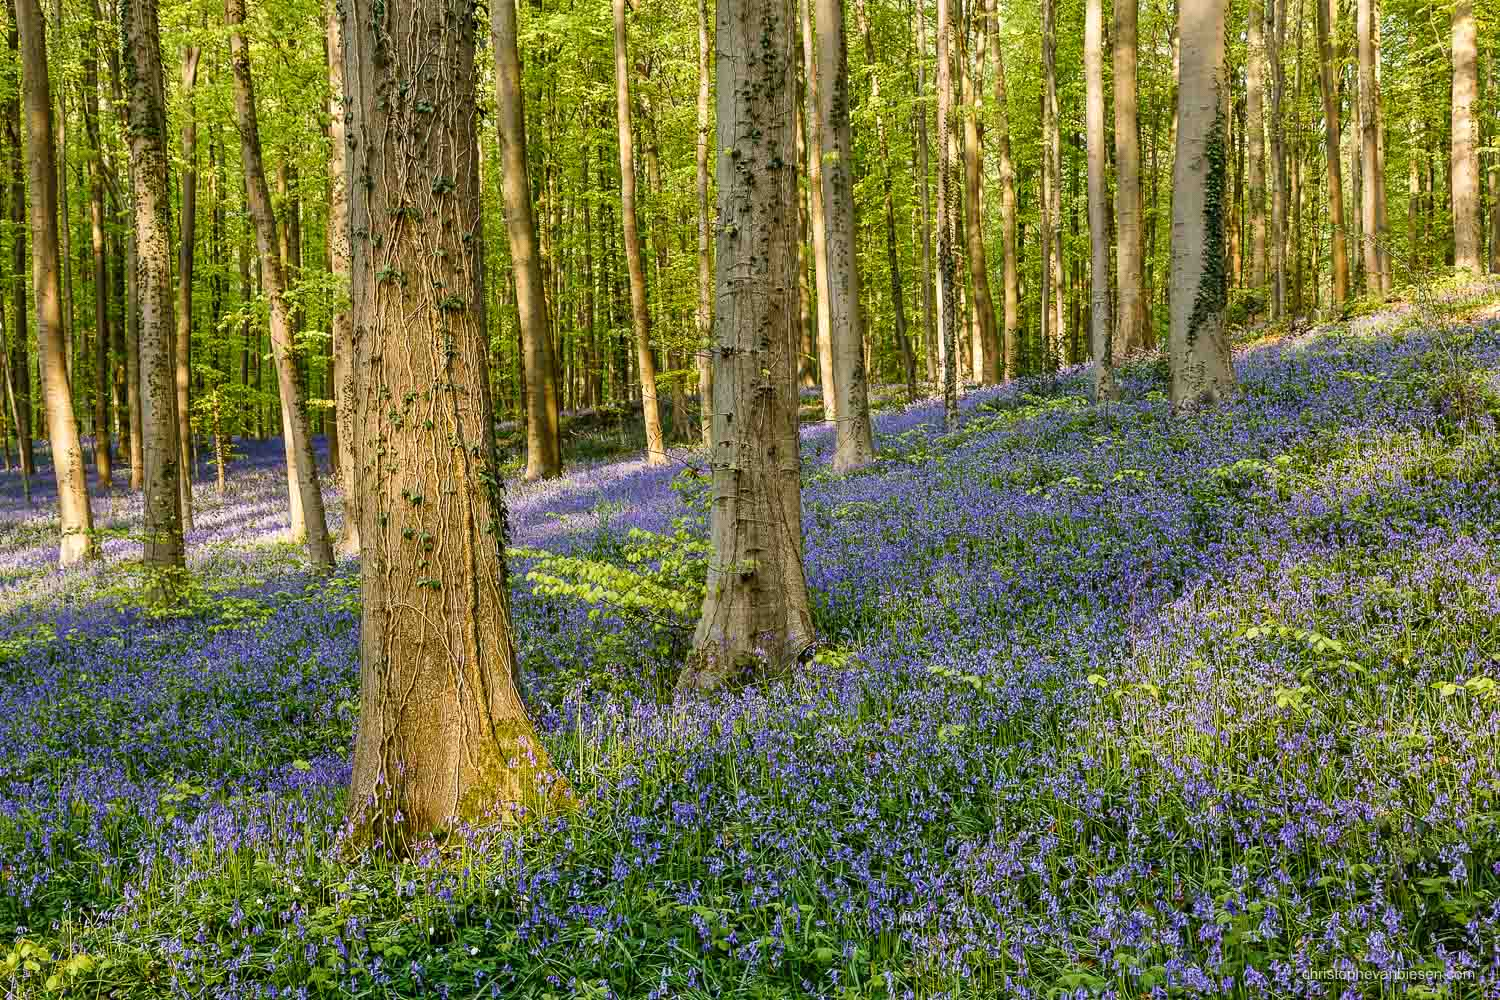 Hallerbos - Belgium - The bluebell forest of Halle, known as the Hallerbos, near Brussels, Belgium - Purple Sea